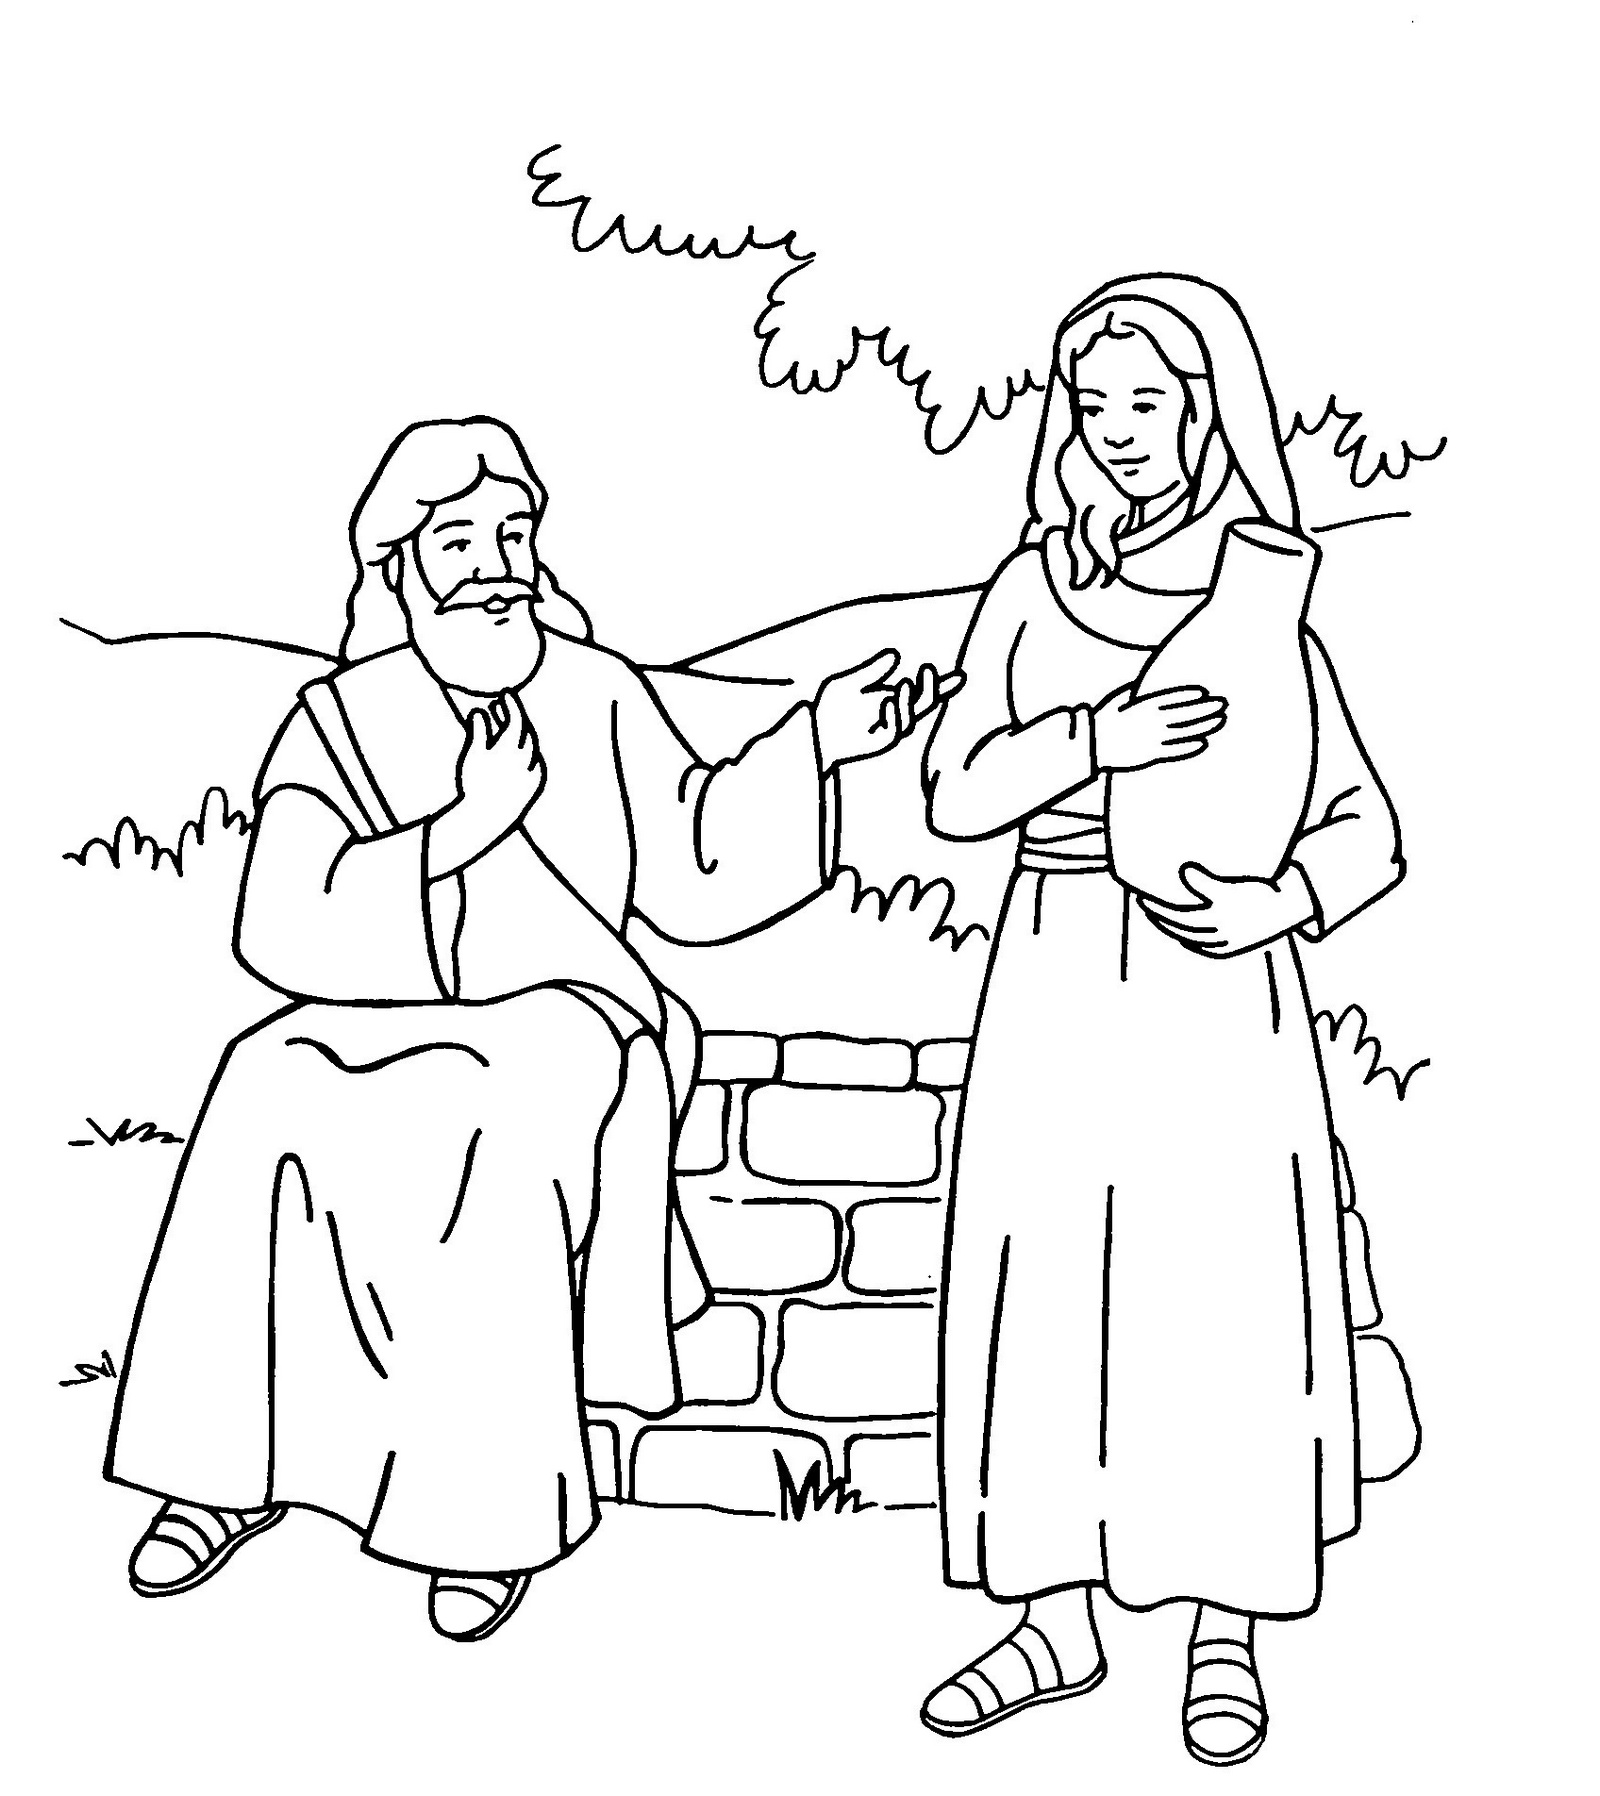 samaritan woman at well meaning history coloring sheet printable